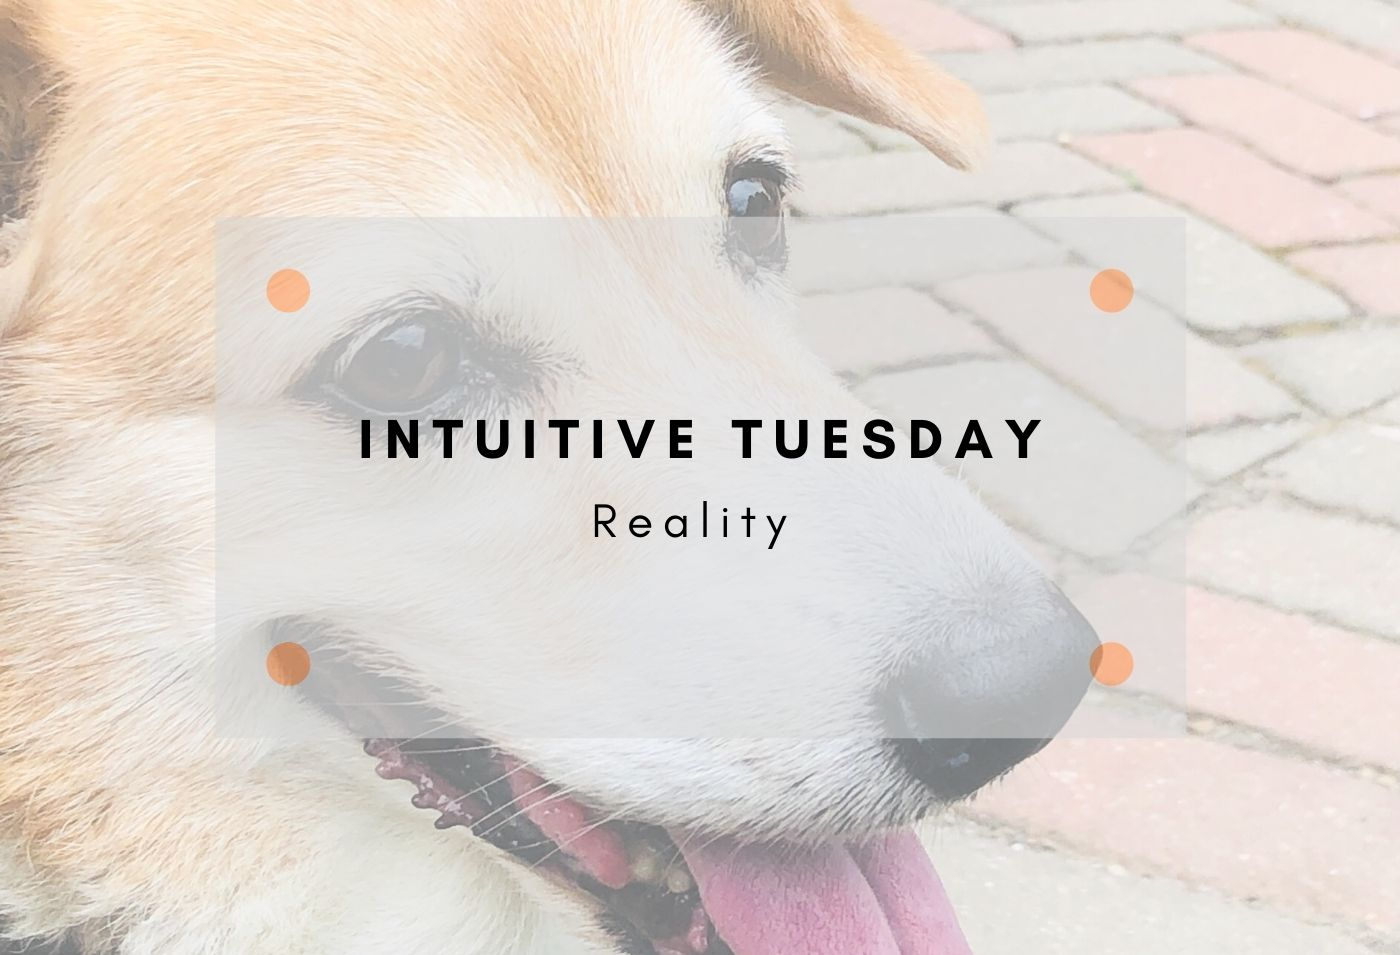 Intuitive tuesday reality